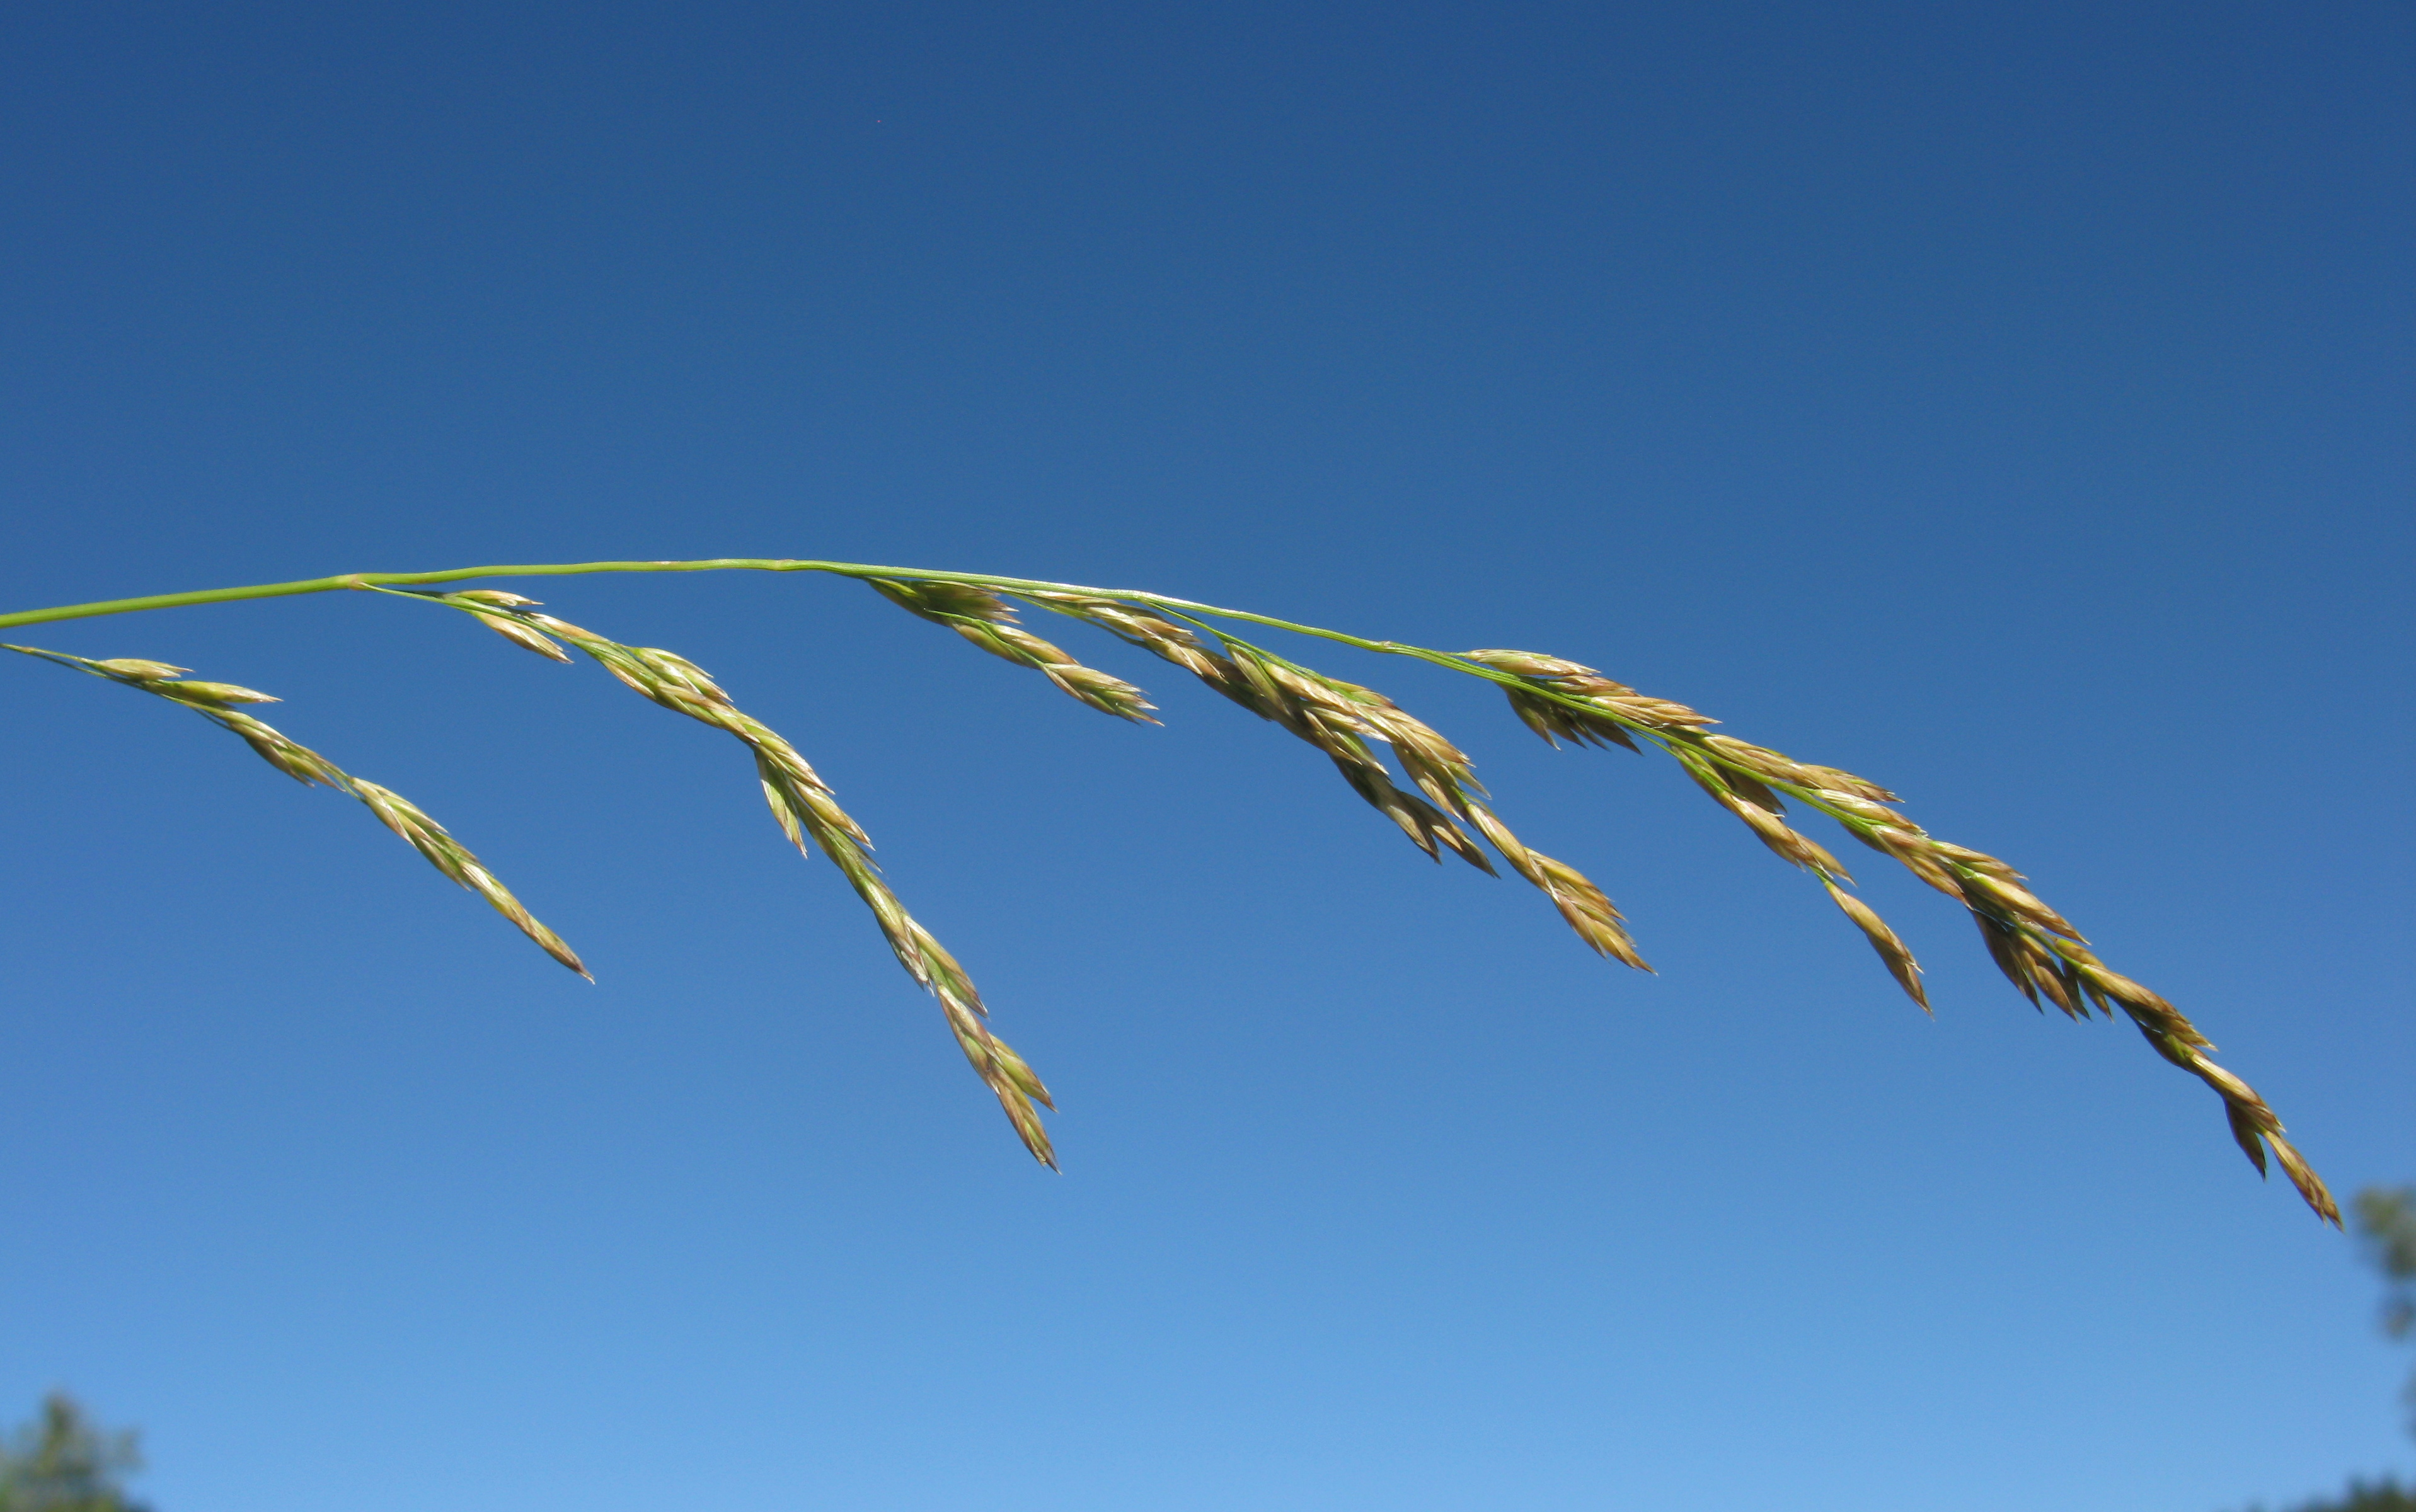 By Harry Rose from South West Rocks, Australia (Festuca arundinacea flowerhead6) [CC BY 2.0 (http://creativecommons.org/licenses/by/2.0)], via Wikimedia Commons